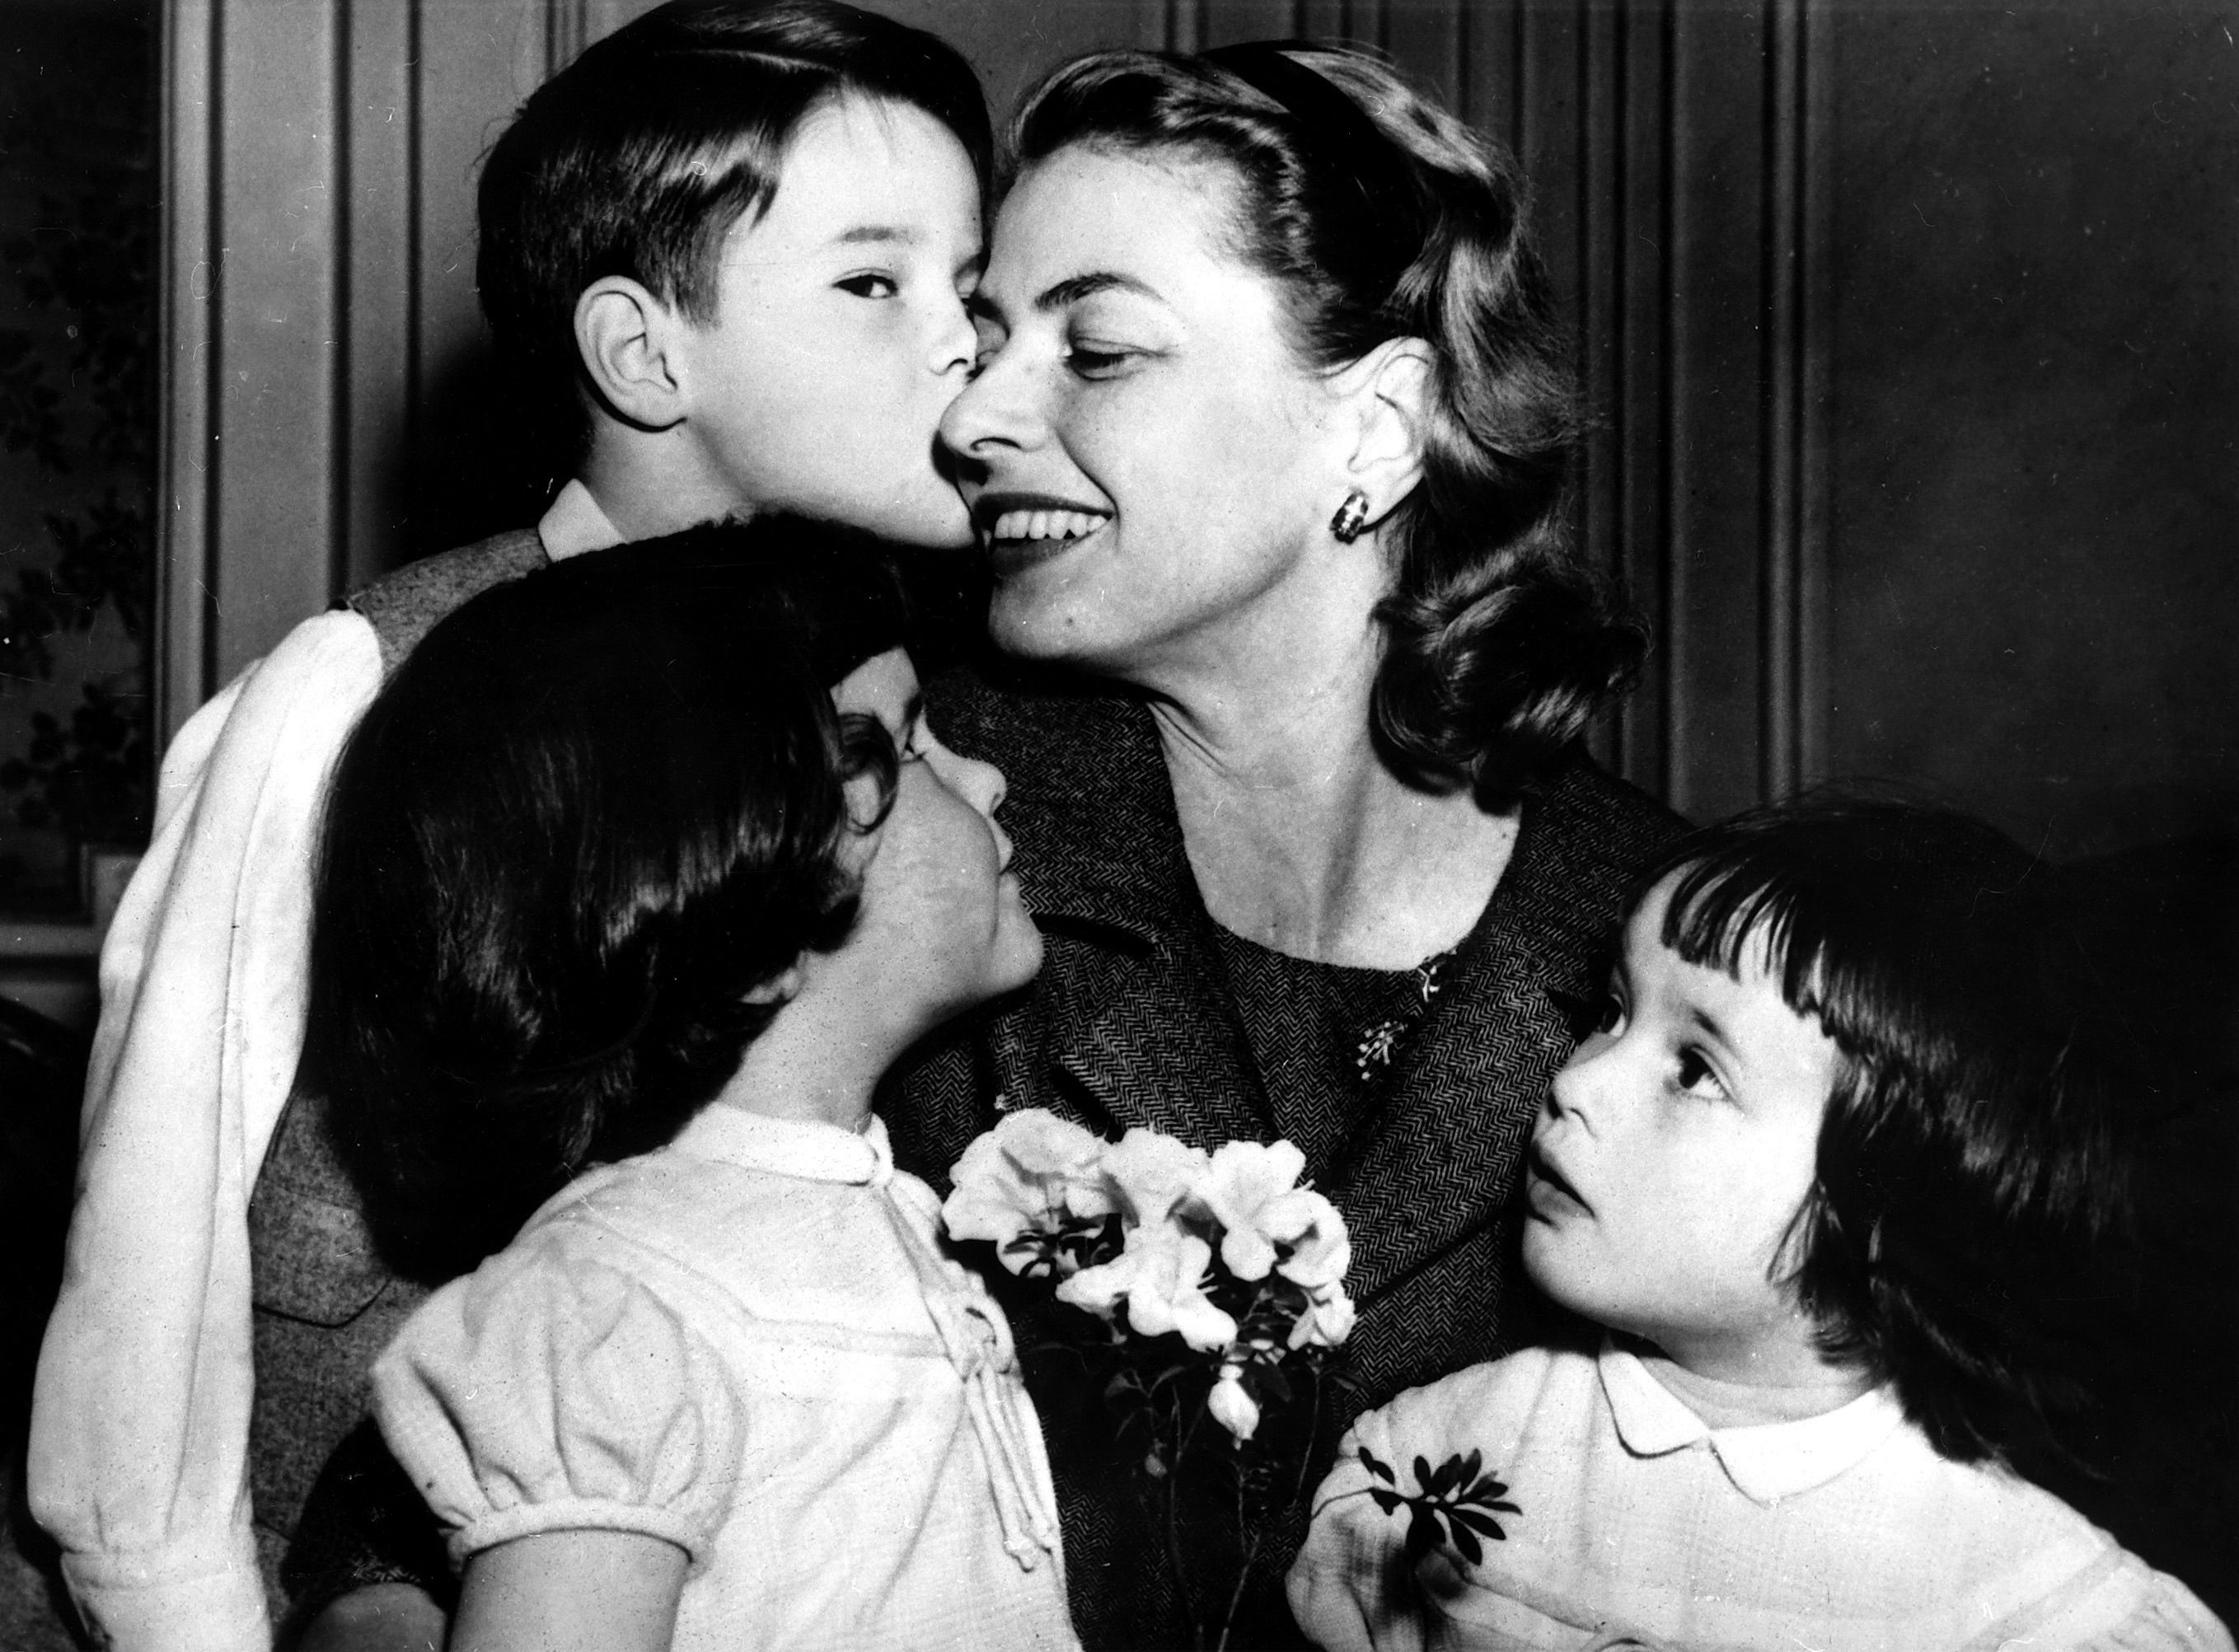 Ingrid Bergman with the three children she shared with Roberto Rossellini: Isabella, Ingrid, and Roberto Jr. | Source: Getty Images